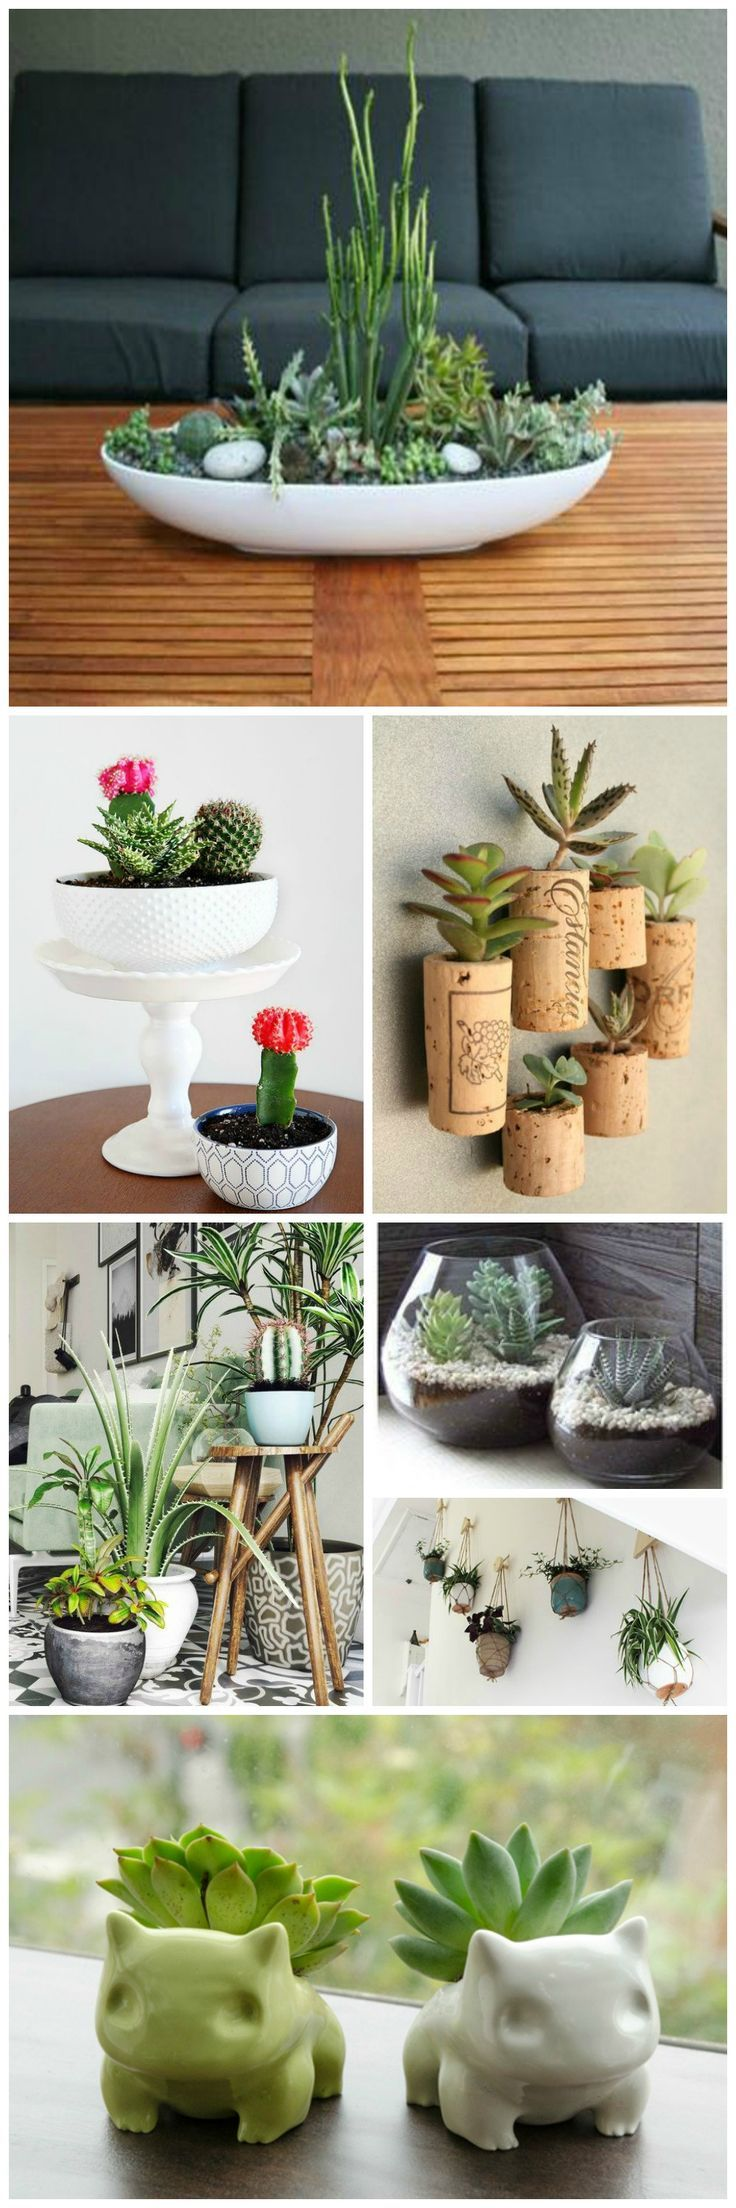 Incredibly 20 cute indoor succulent decor ideas to beautify your home